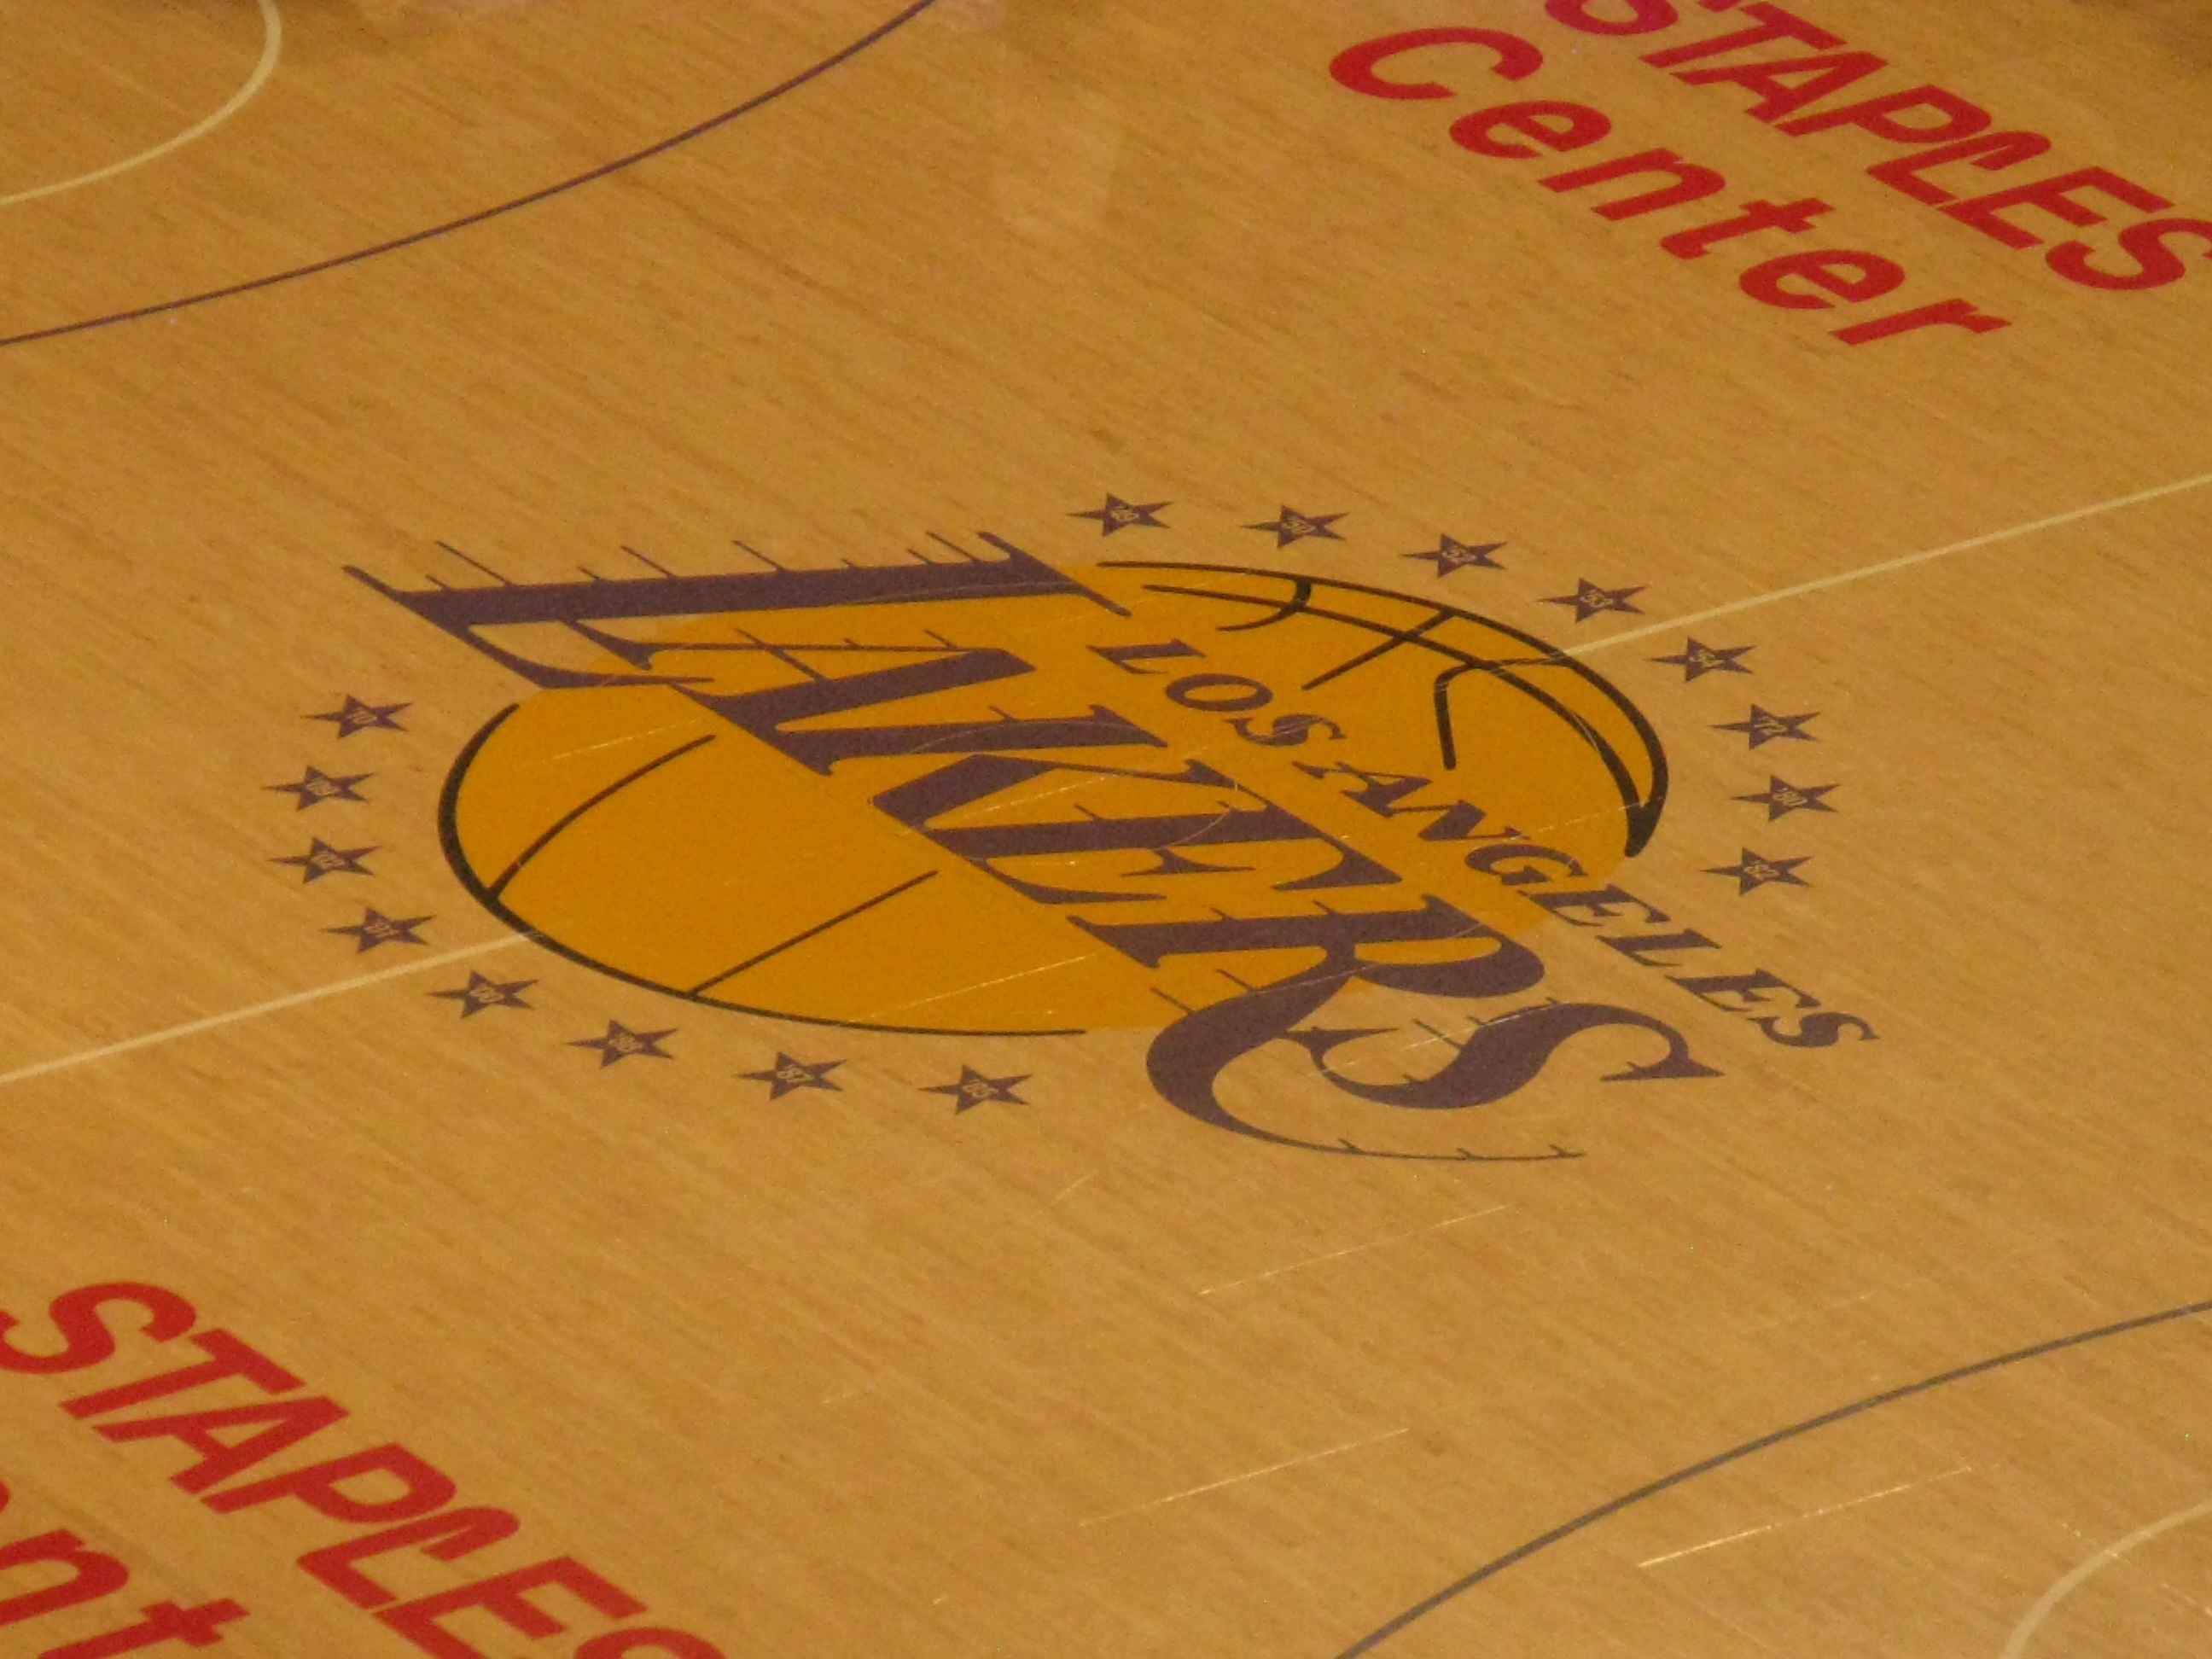 Staples center los angeles lakers stadium journey staples center l a lakers logo at midcourt voltagebd Choice Image